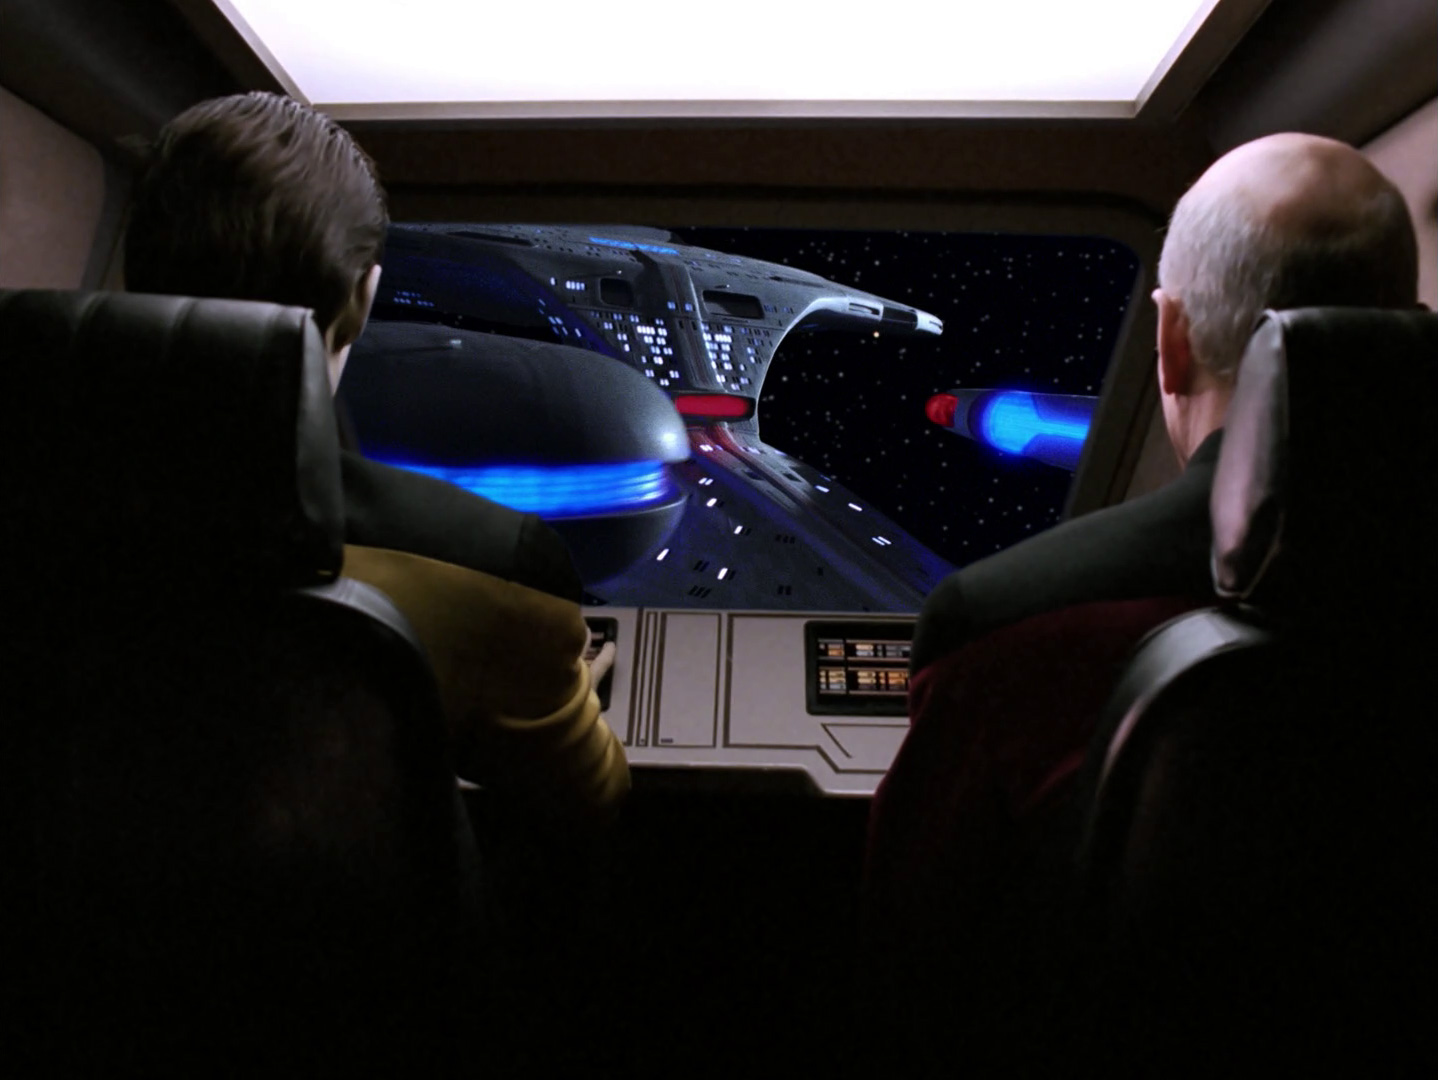 Star Trek: The Next Generation - Der Pakt mit dem Teufel (Devil's Due) Blu-ray Screencap © CBS/Paramount